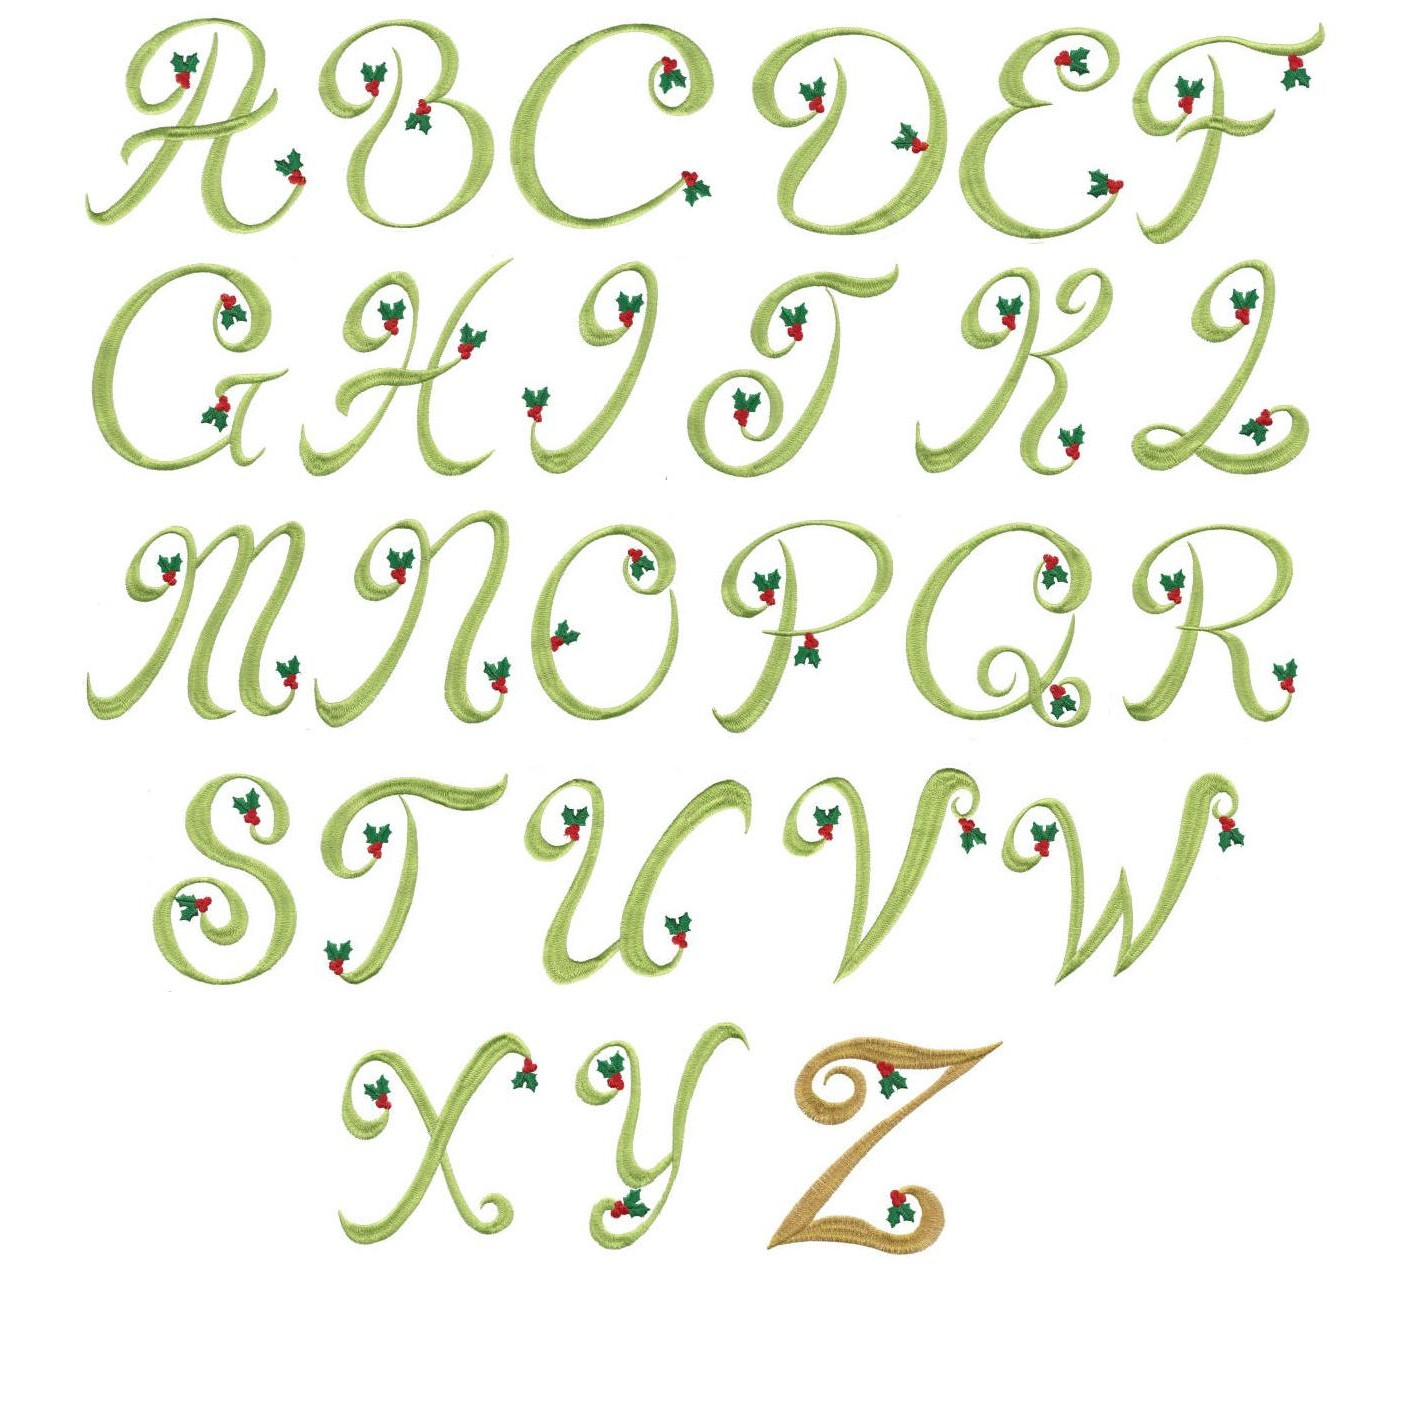 12 Free Embroidery Alphabet Fonts Images - Free Machine Embroidery